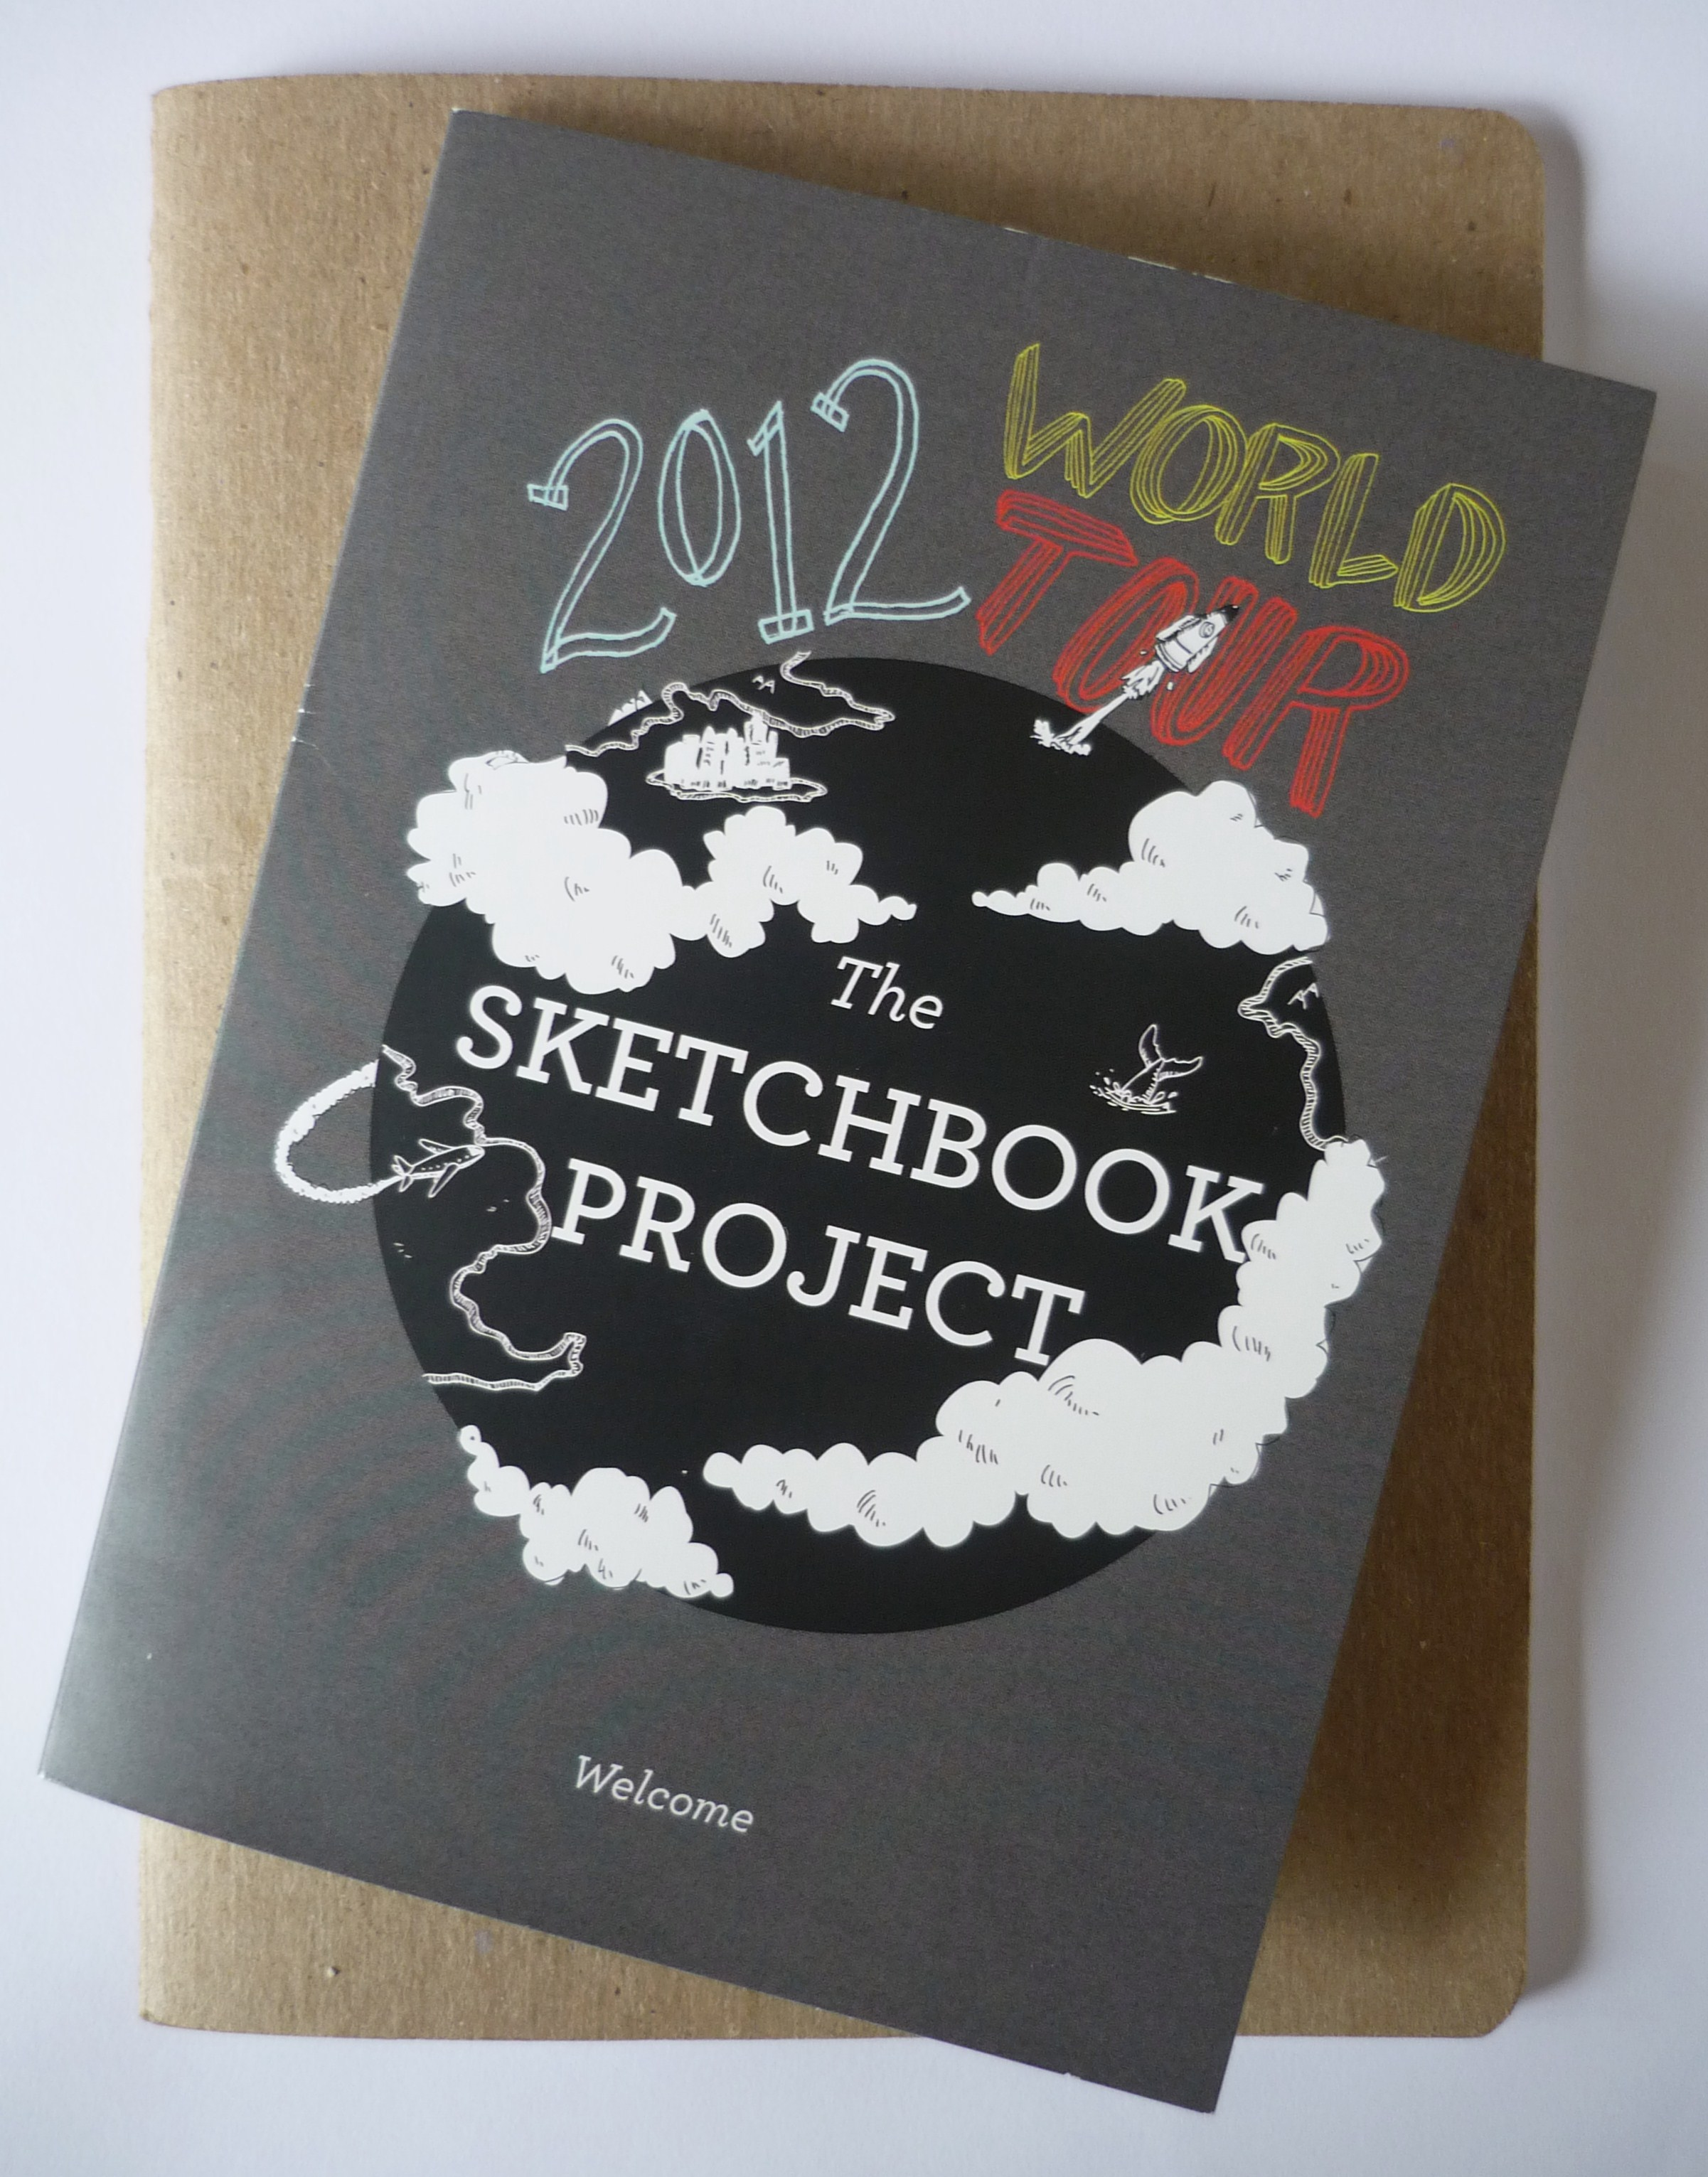 The Sketchbook Project World Tour 2012 014.JPG